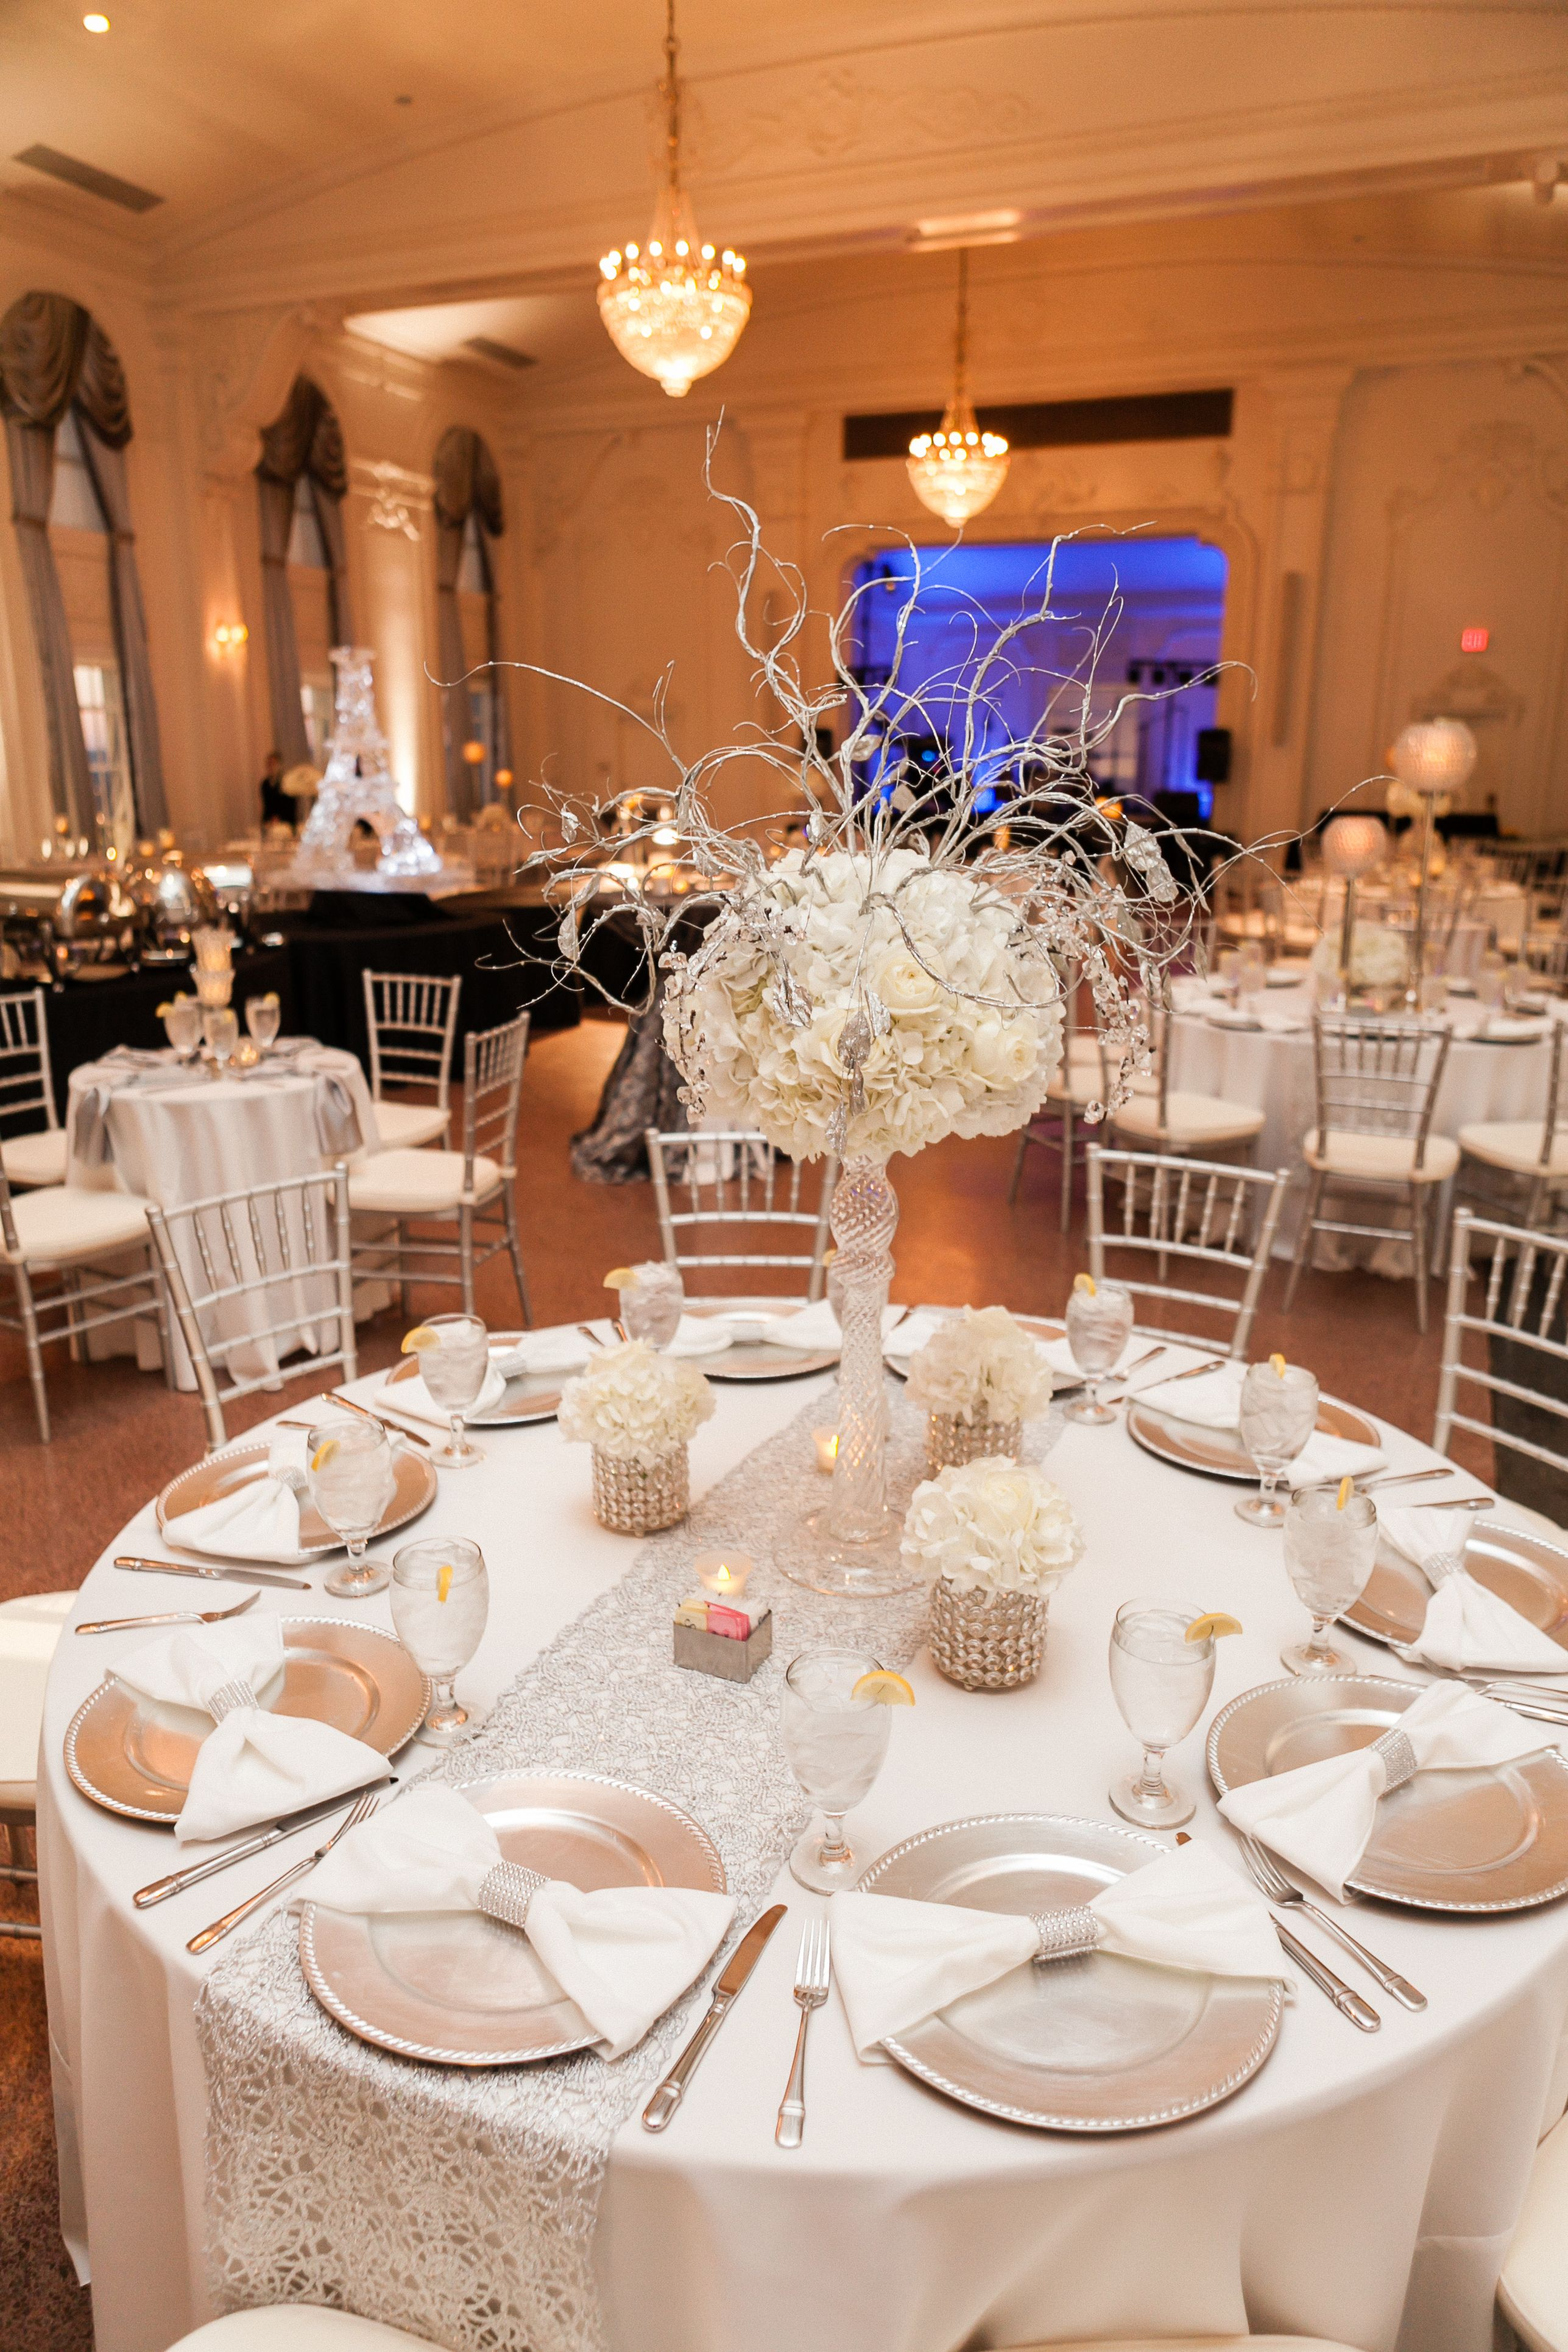 Gorgeous winter sparkly wedding centerpieces in white and